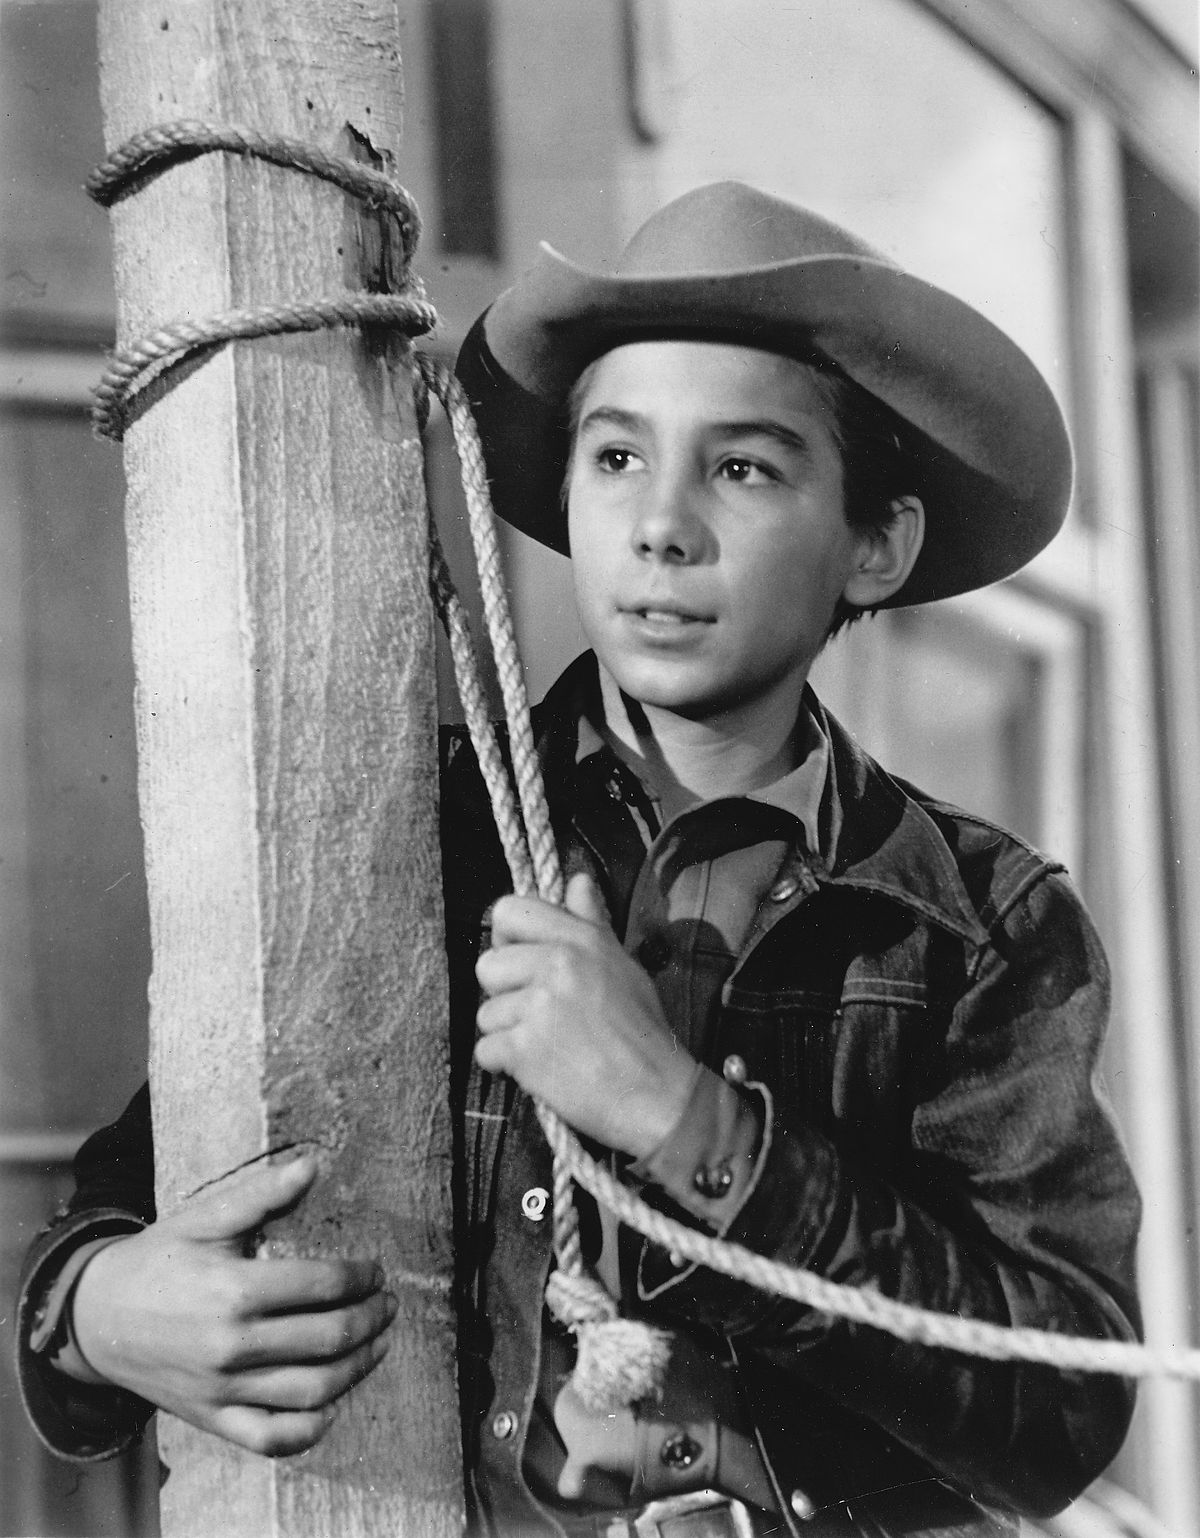 Black and white image of Johnny Crawford from the show The Rifleman